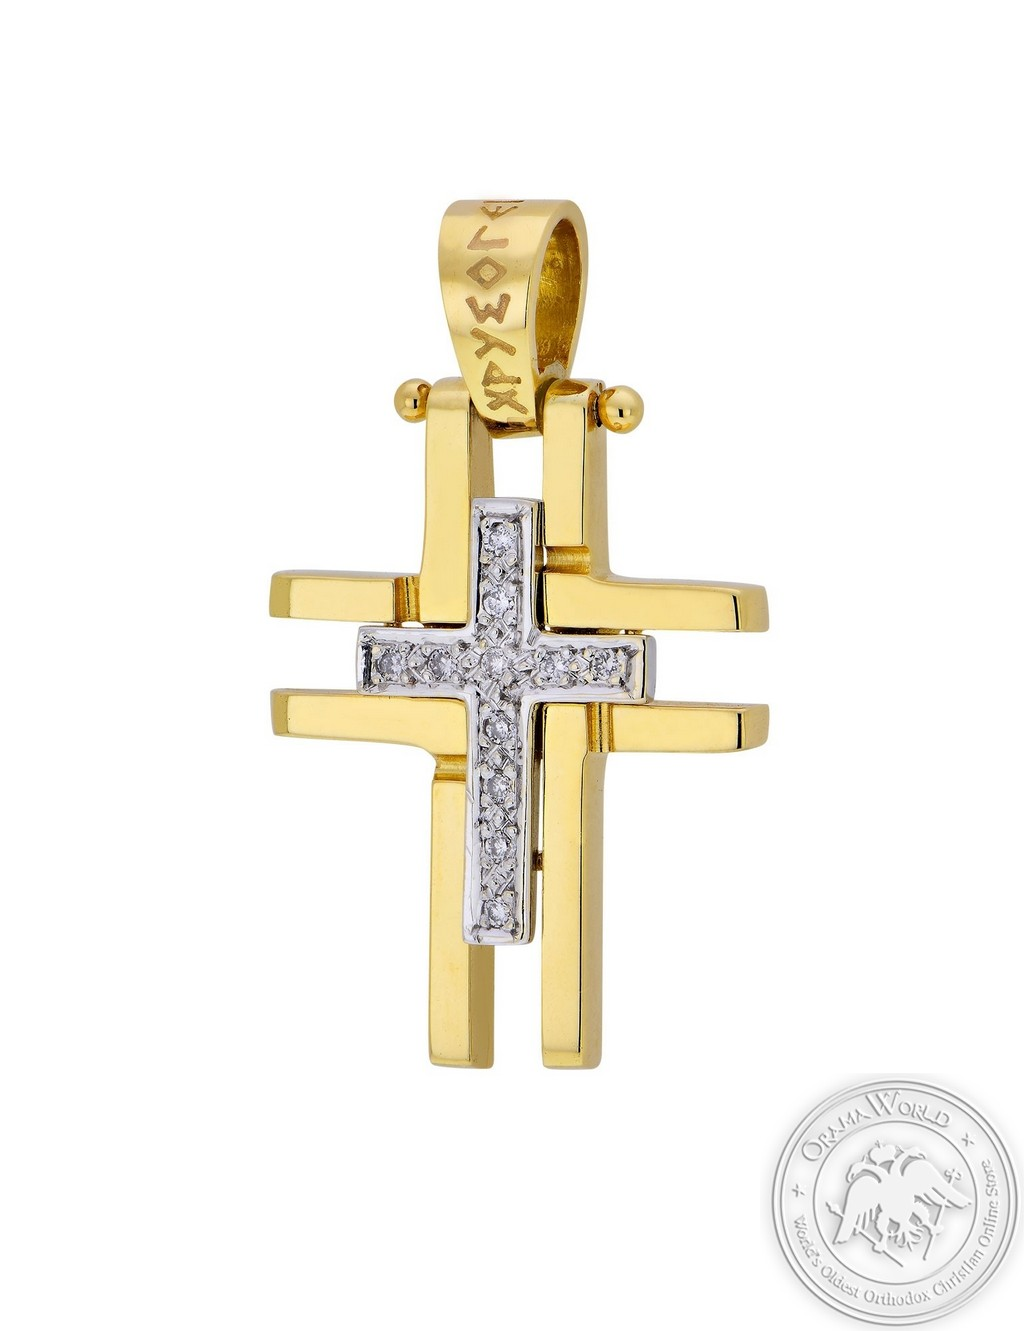 Christening Cross for Girls made of 18K Yellow and White Gold with Diamonds